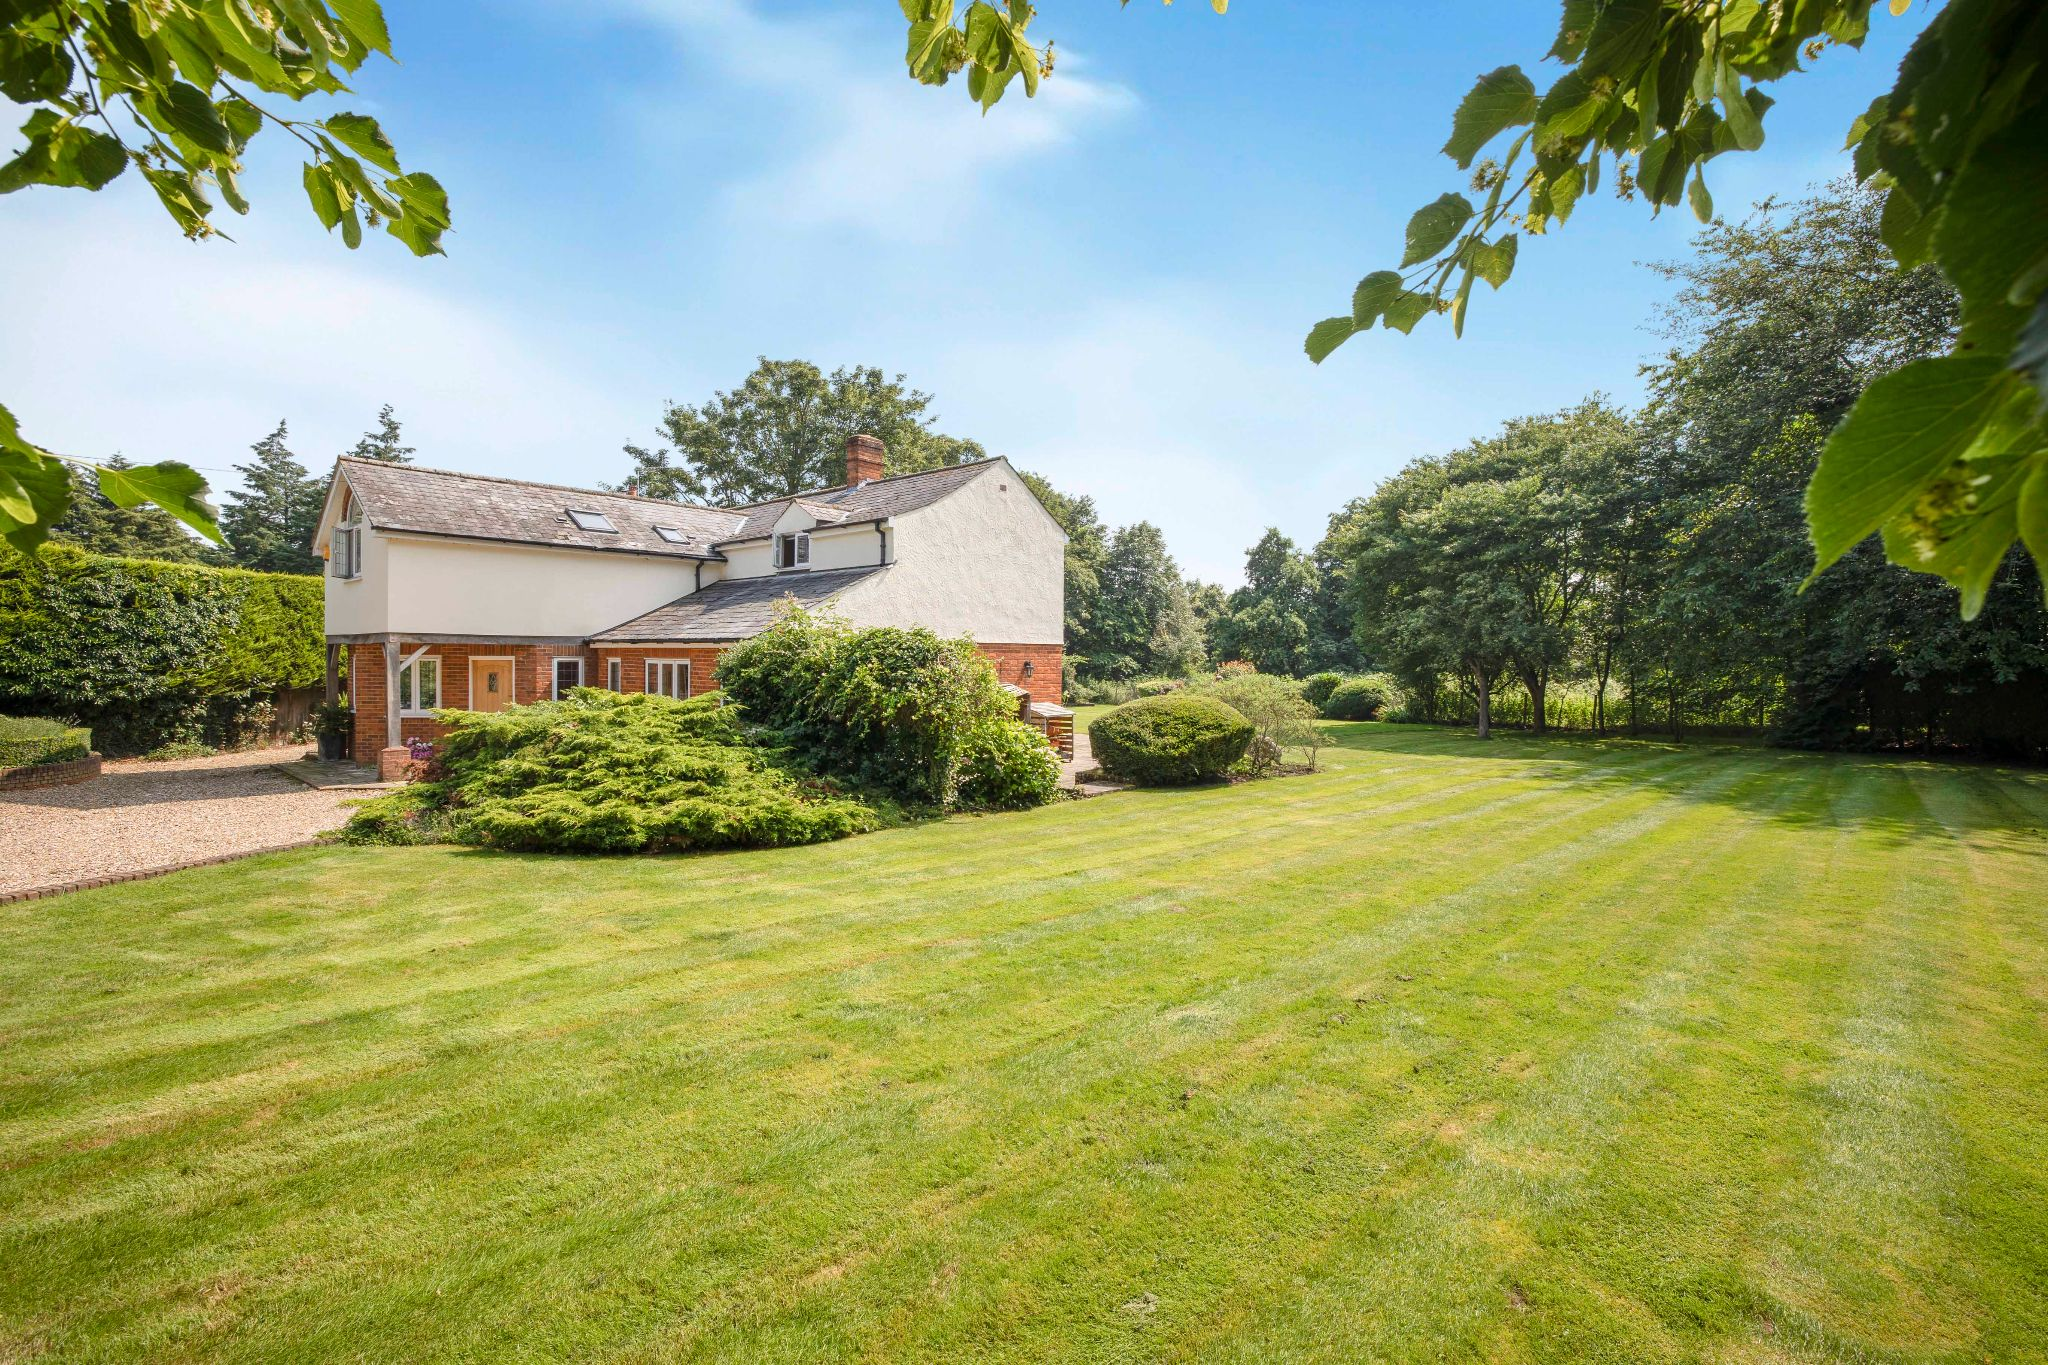 5 bedroom detached house Sale Agreed in Hertford - Photograph 12